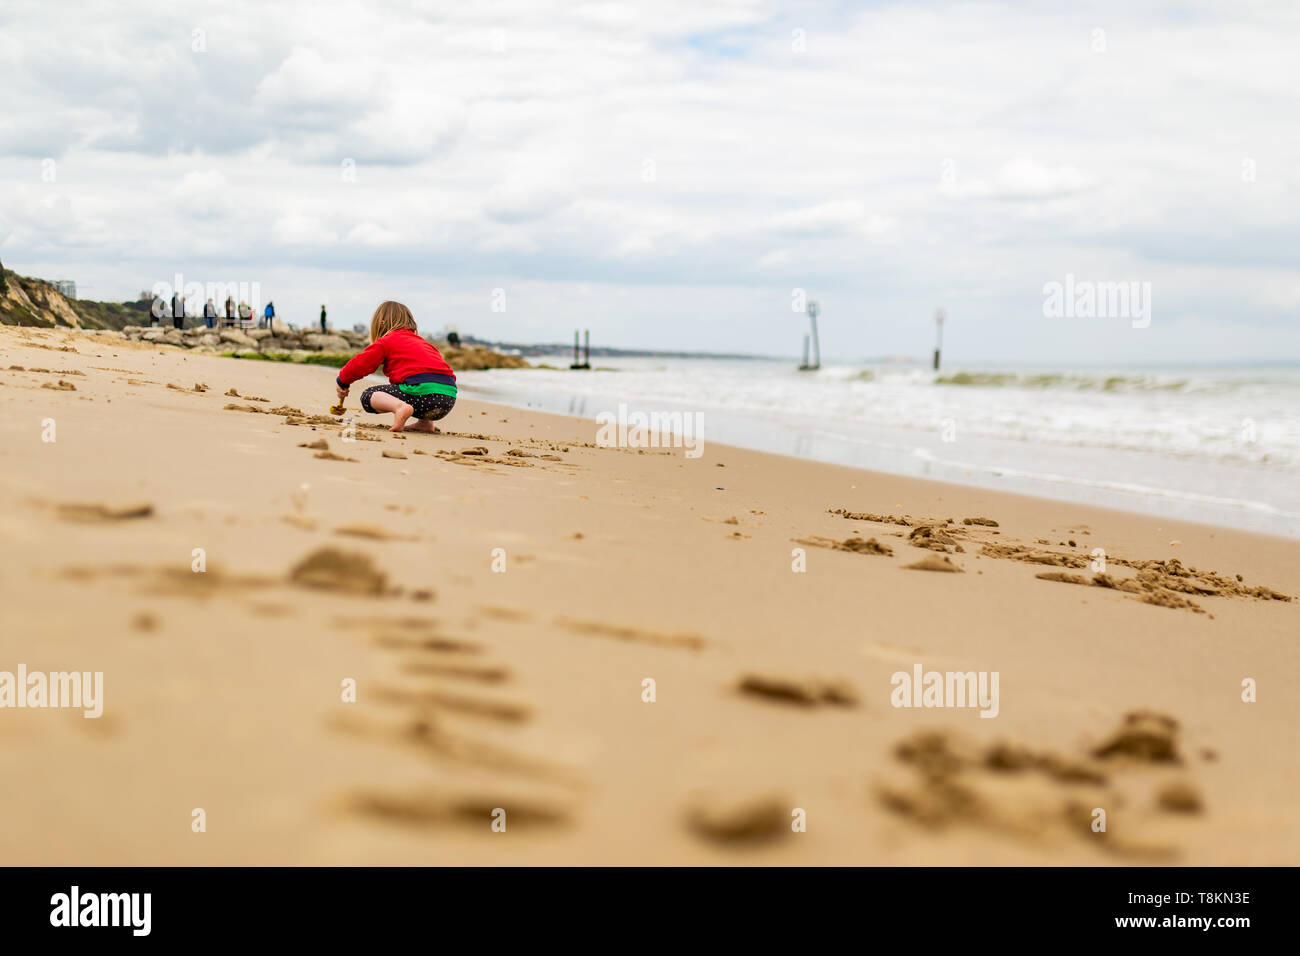 Young child crouching on beachs waters edge digging many small holes in sand, taken from behind. Poole, Dorset, England. Stock Photo